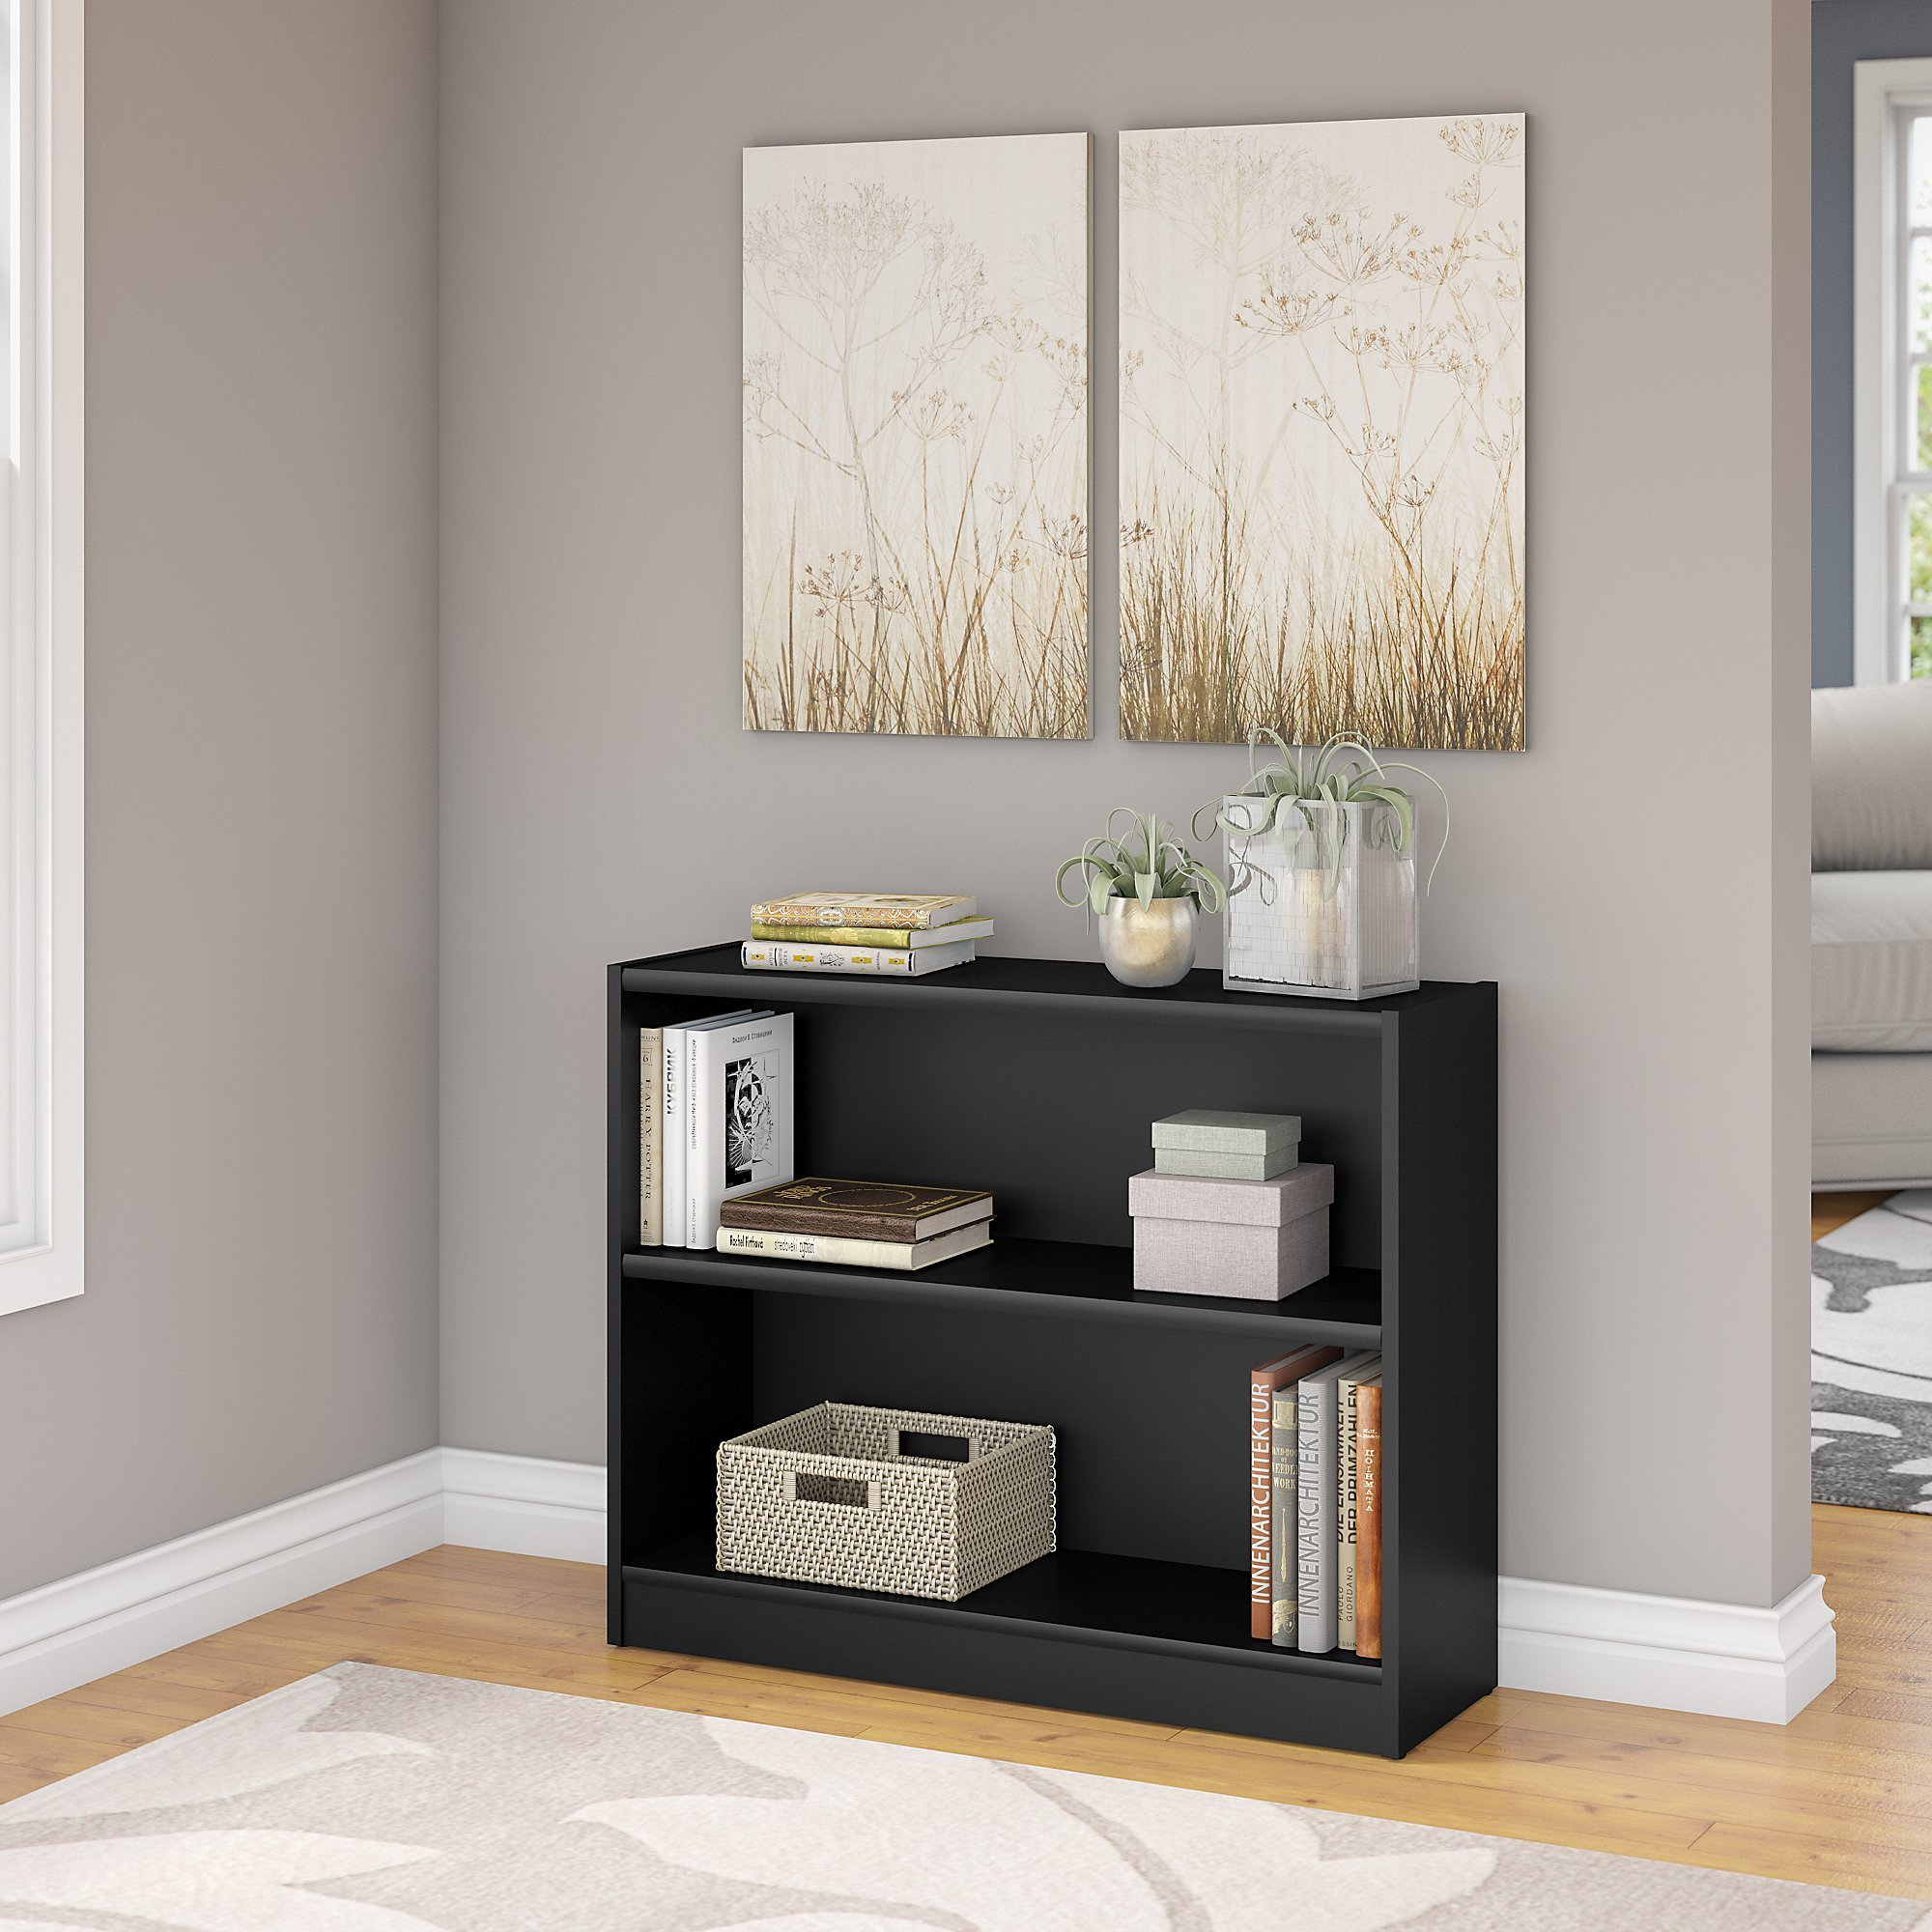 Bush Furniture Universal 2 Shelf Bookcase in Classic Black